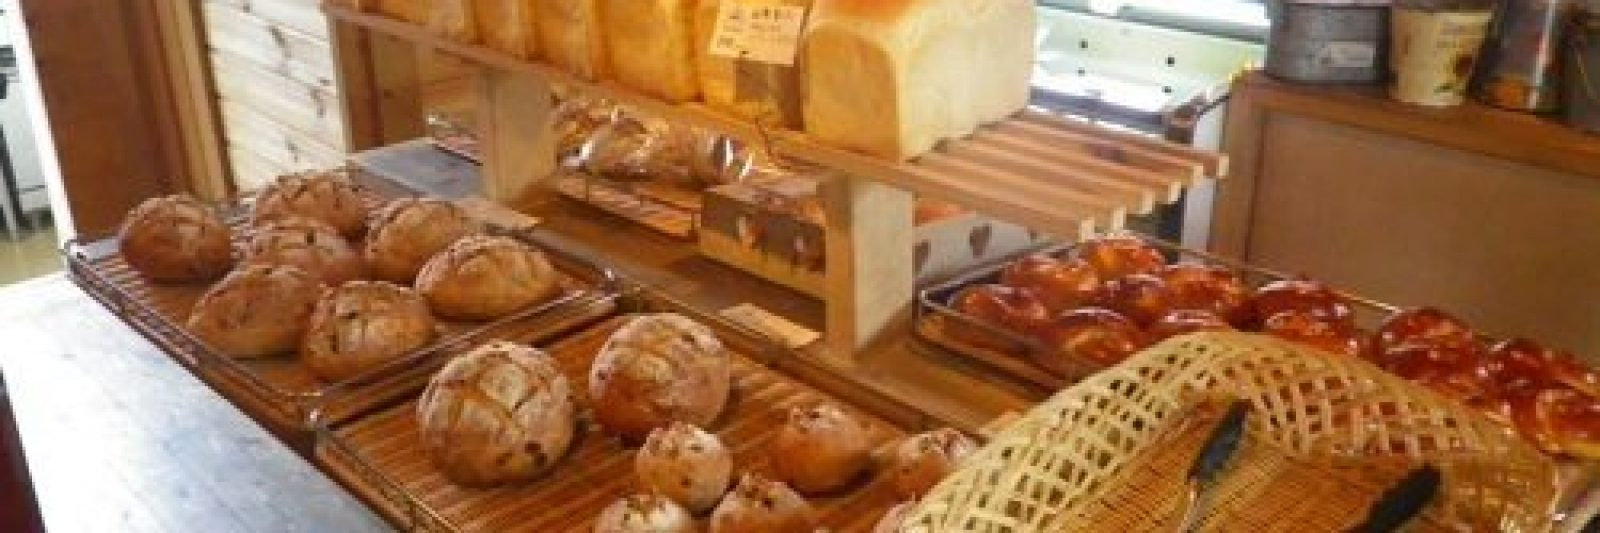 the barn bread selection